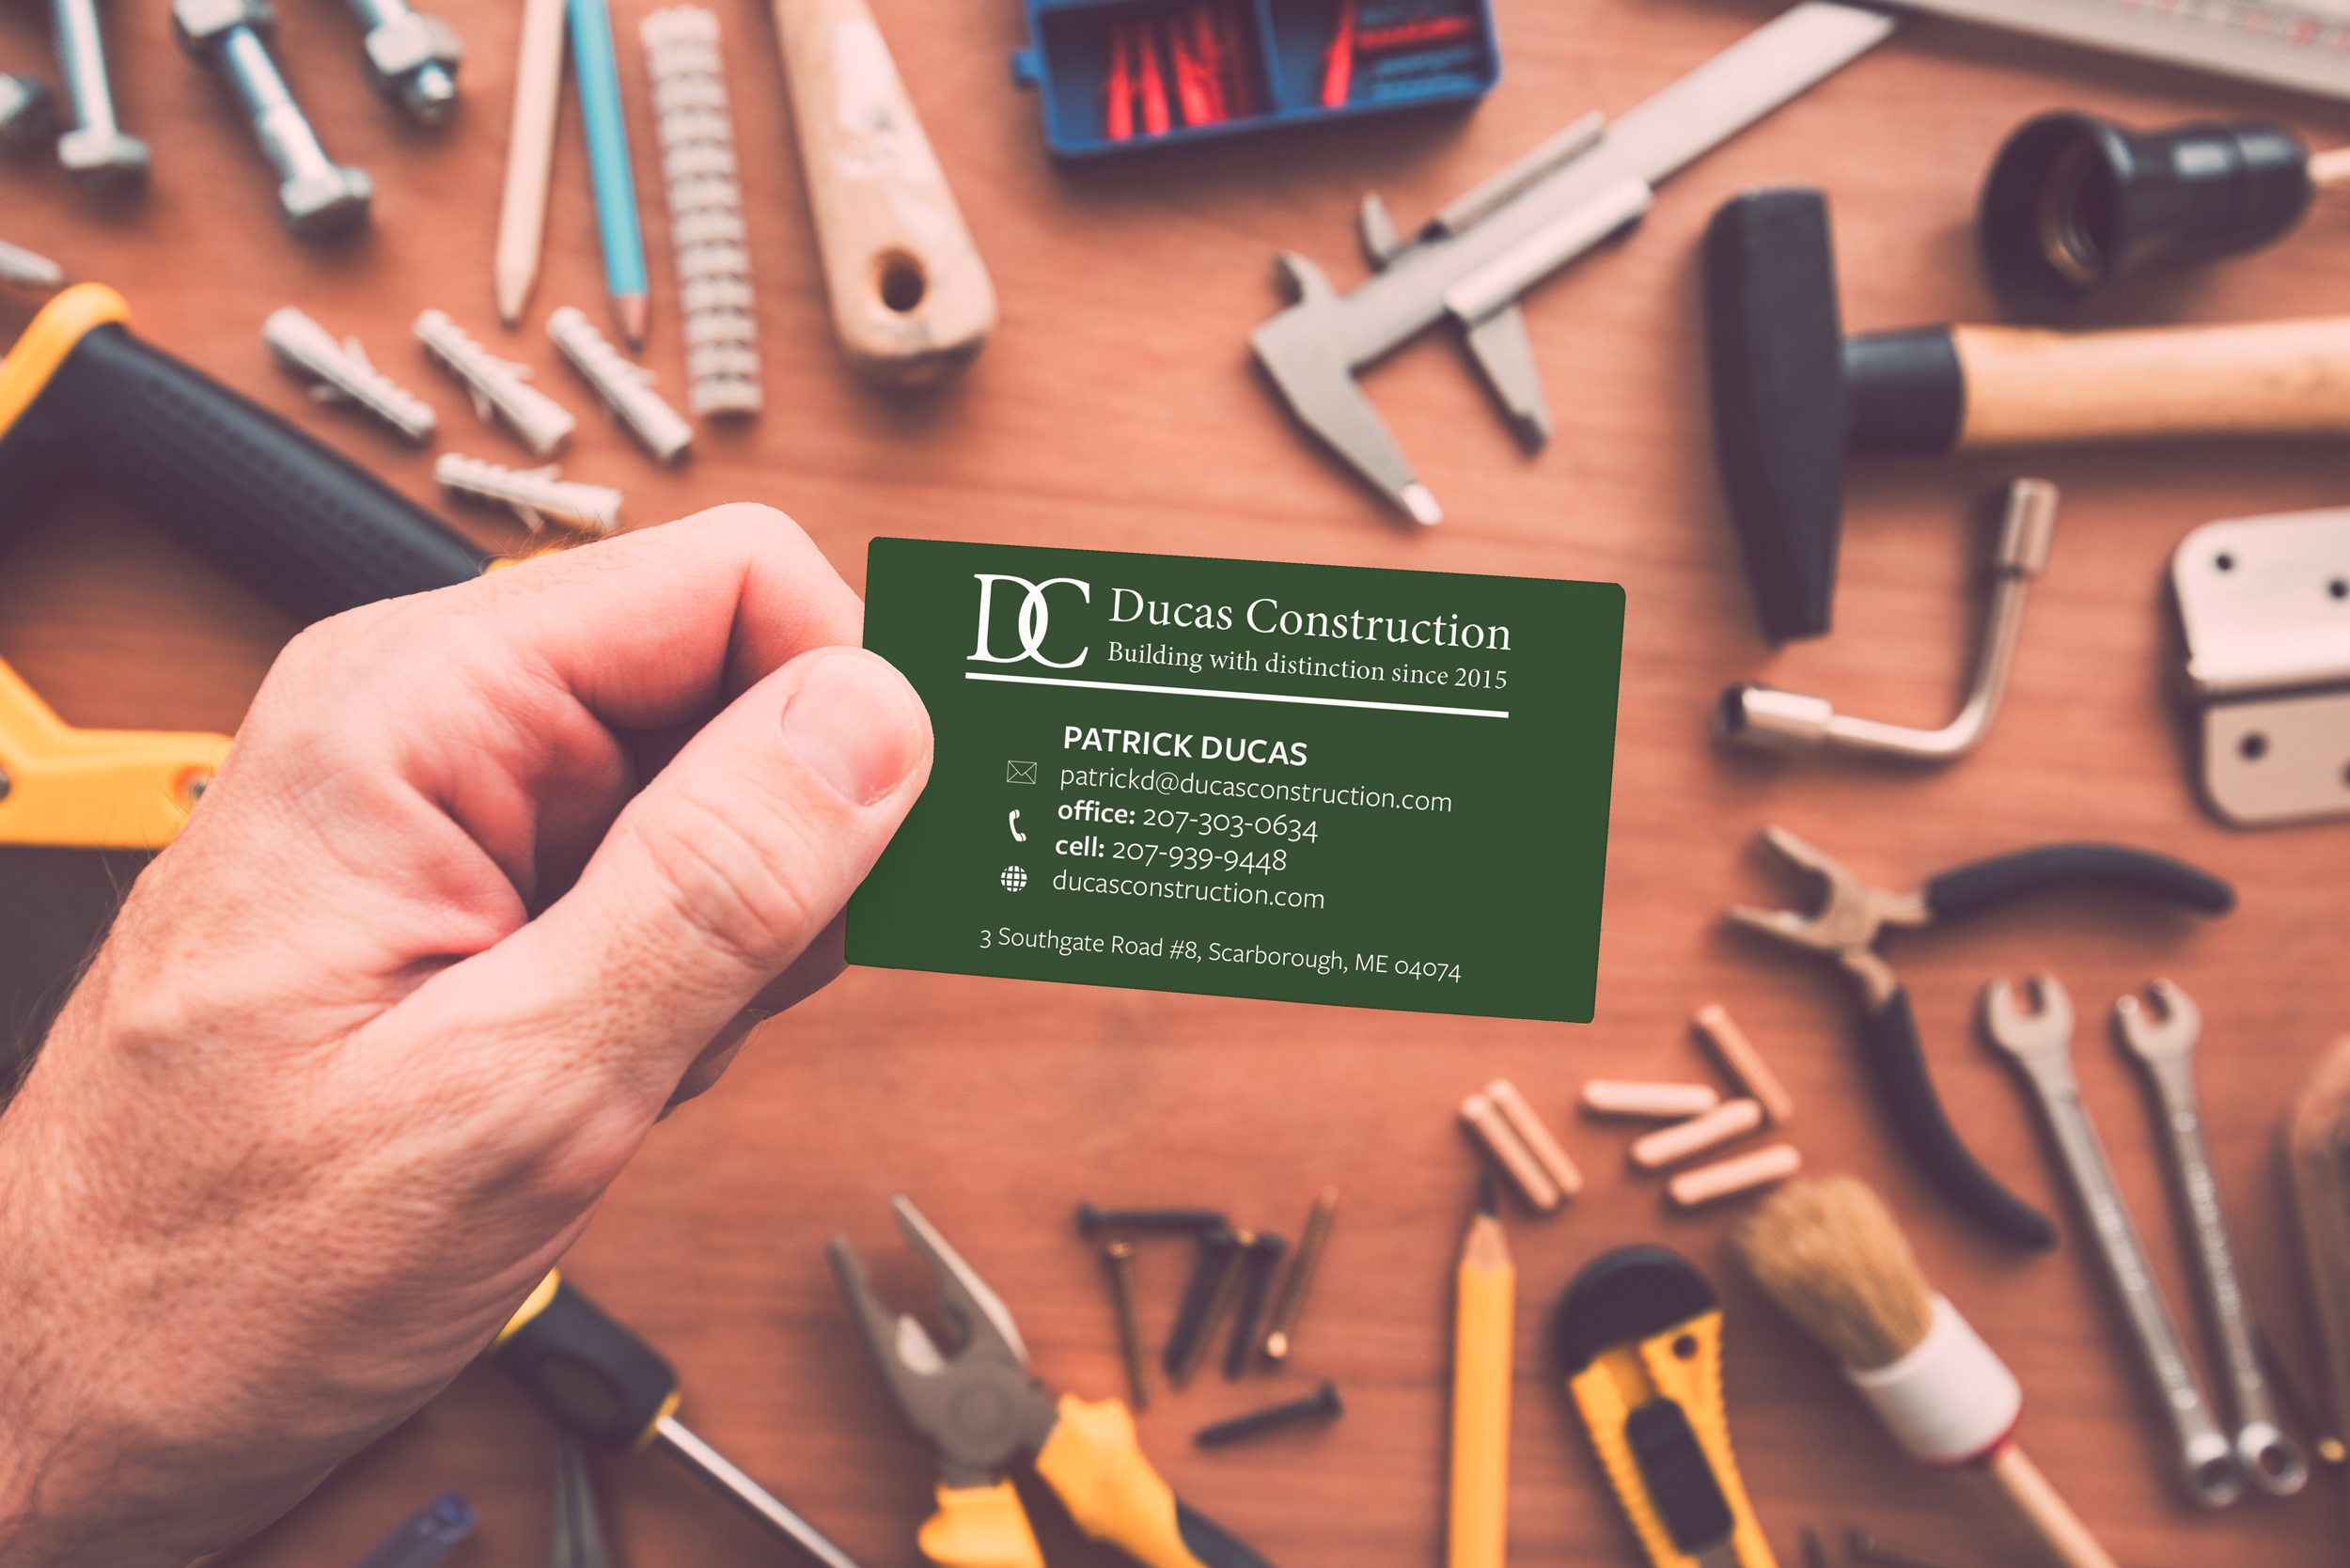 Ducas Construction Business Cards – Cental Design Co.